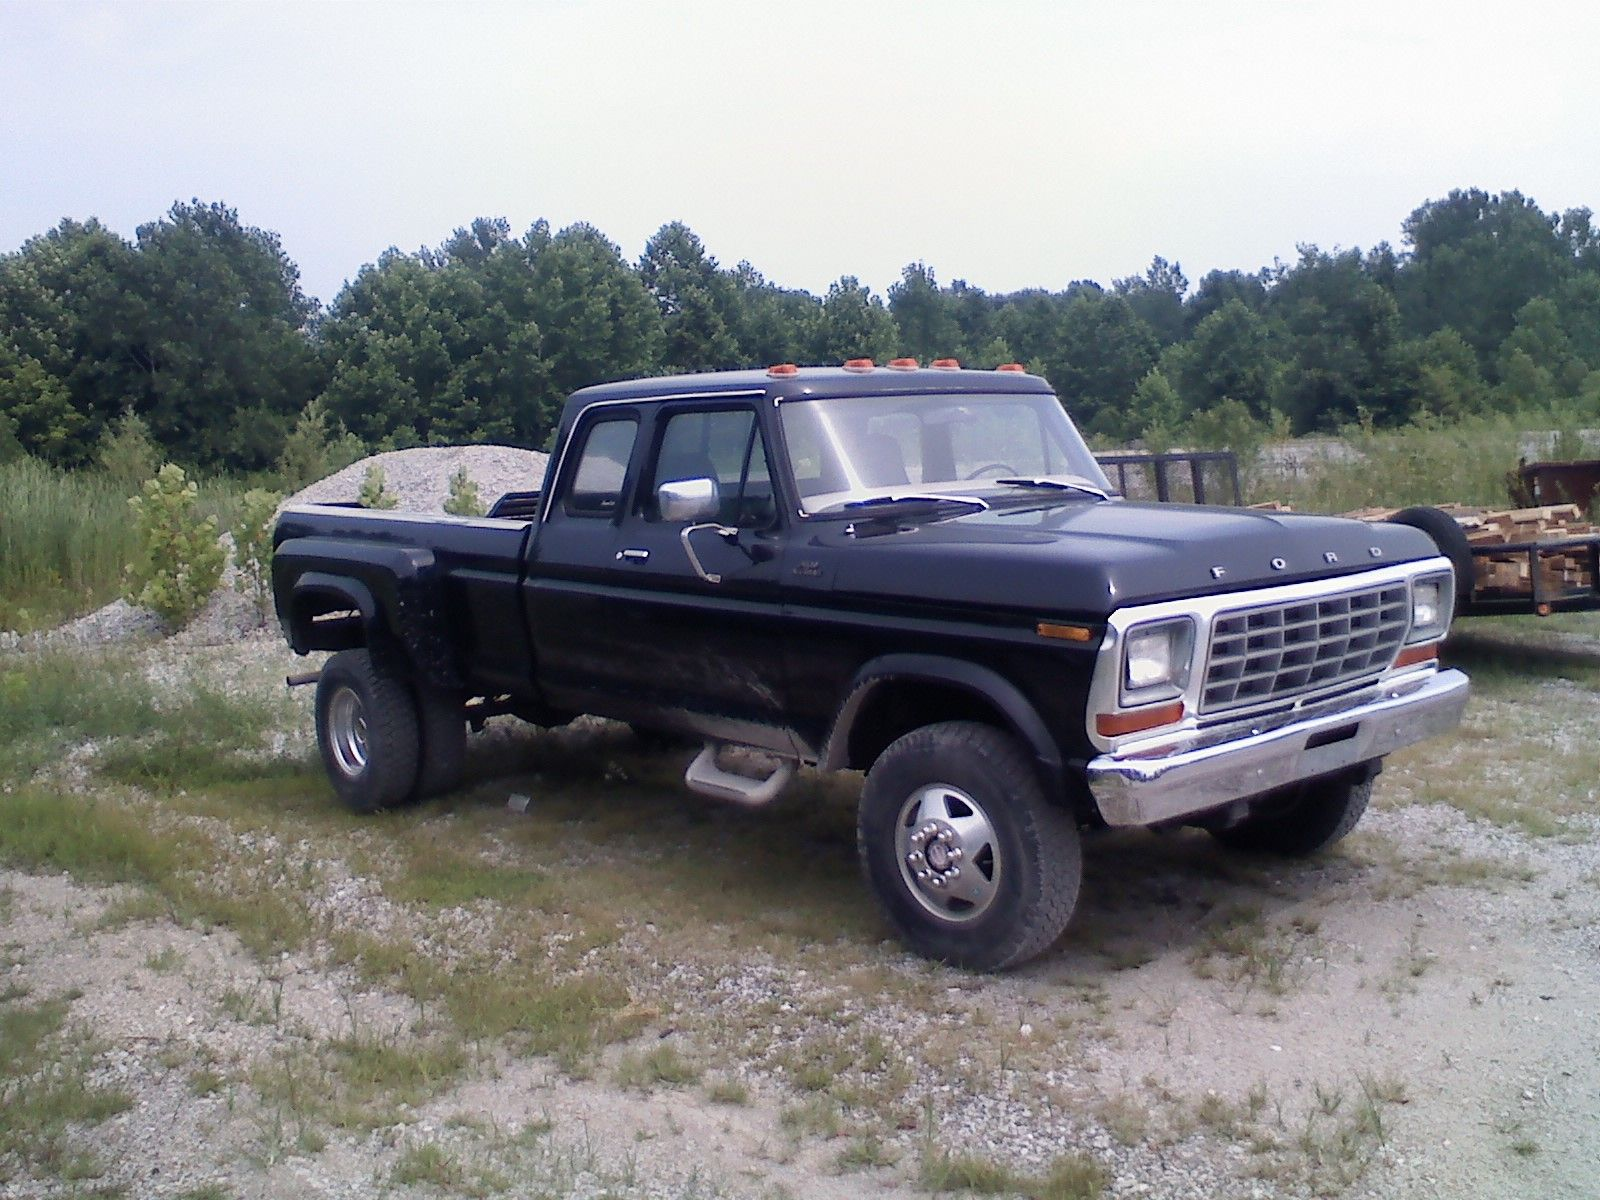 79 ford f350 super cab conversion cummins dodge cummins diesel